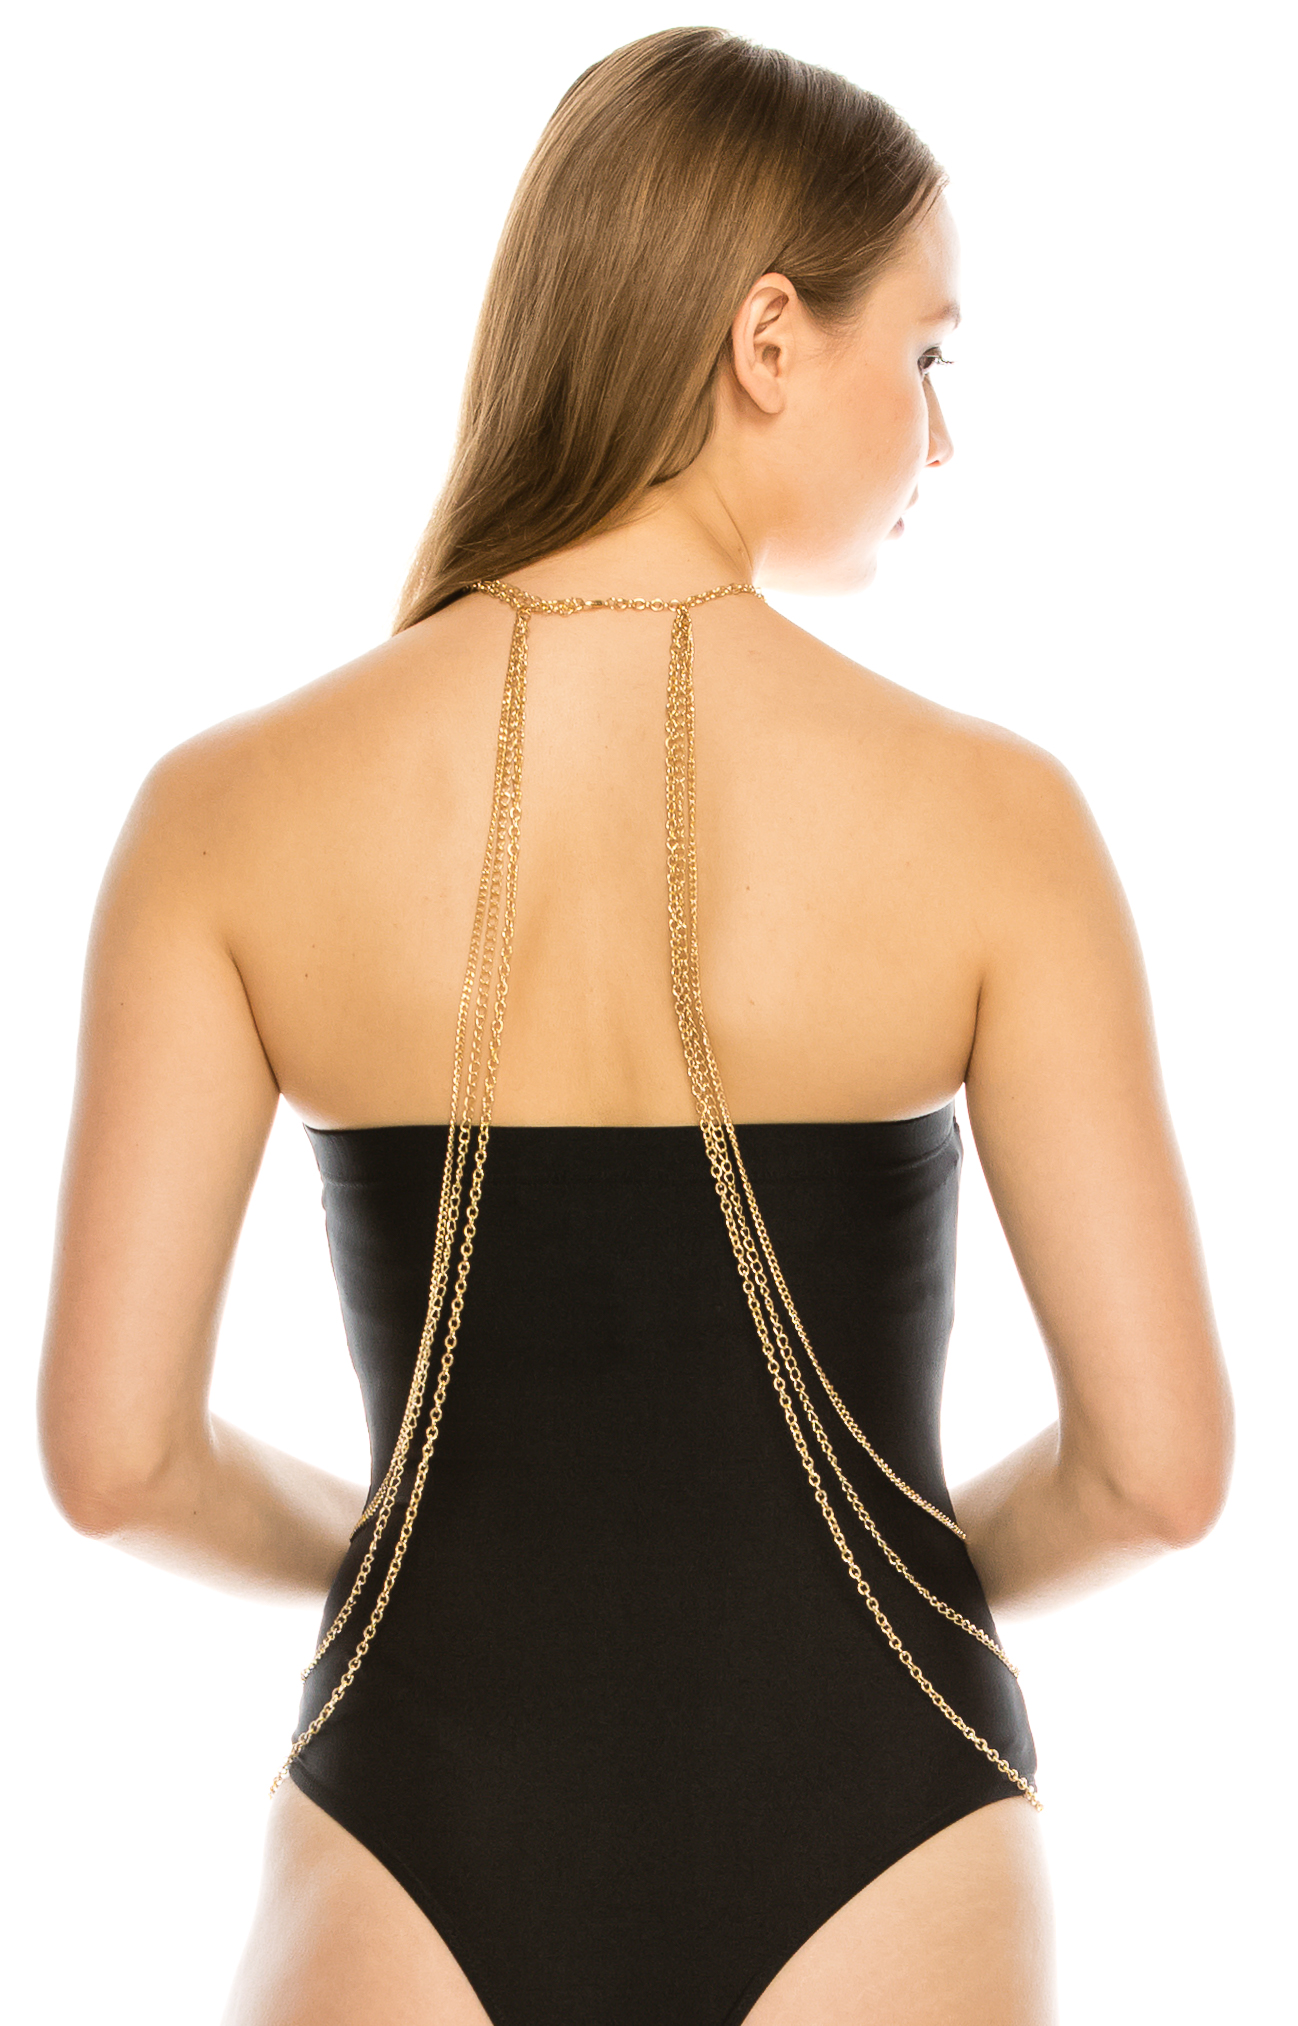 body-chain-6 Gold Body Chain & Statement Necklace Body Jewelry for Women